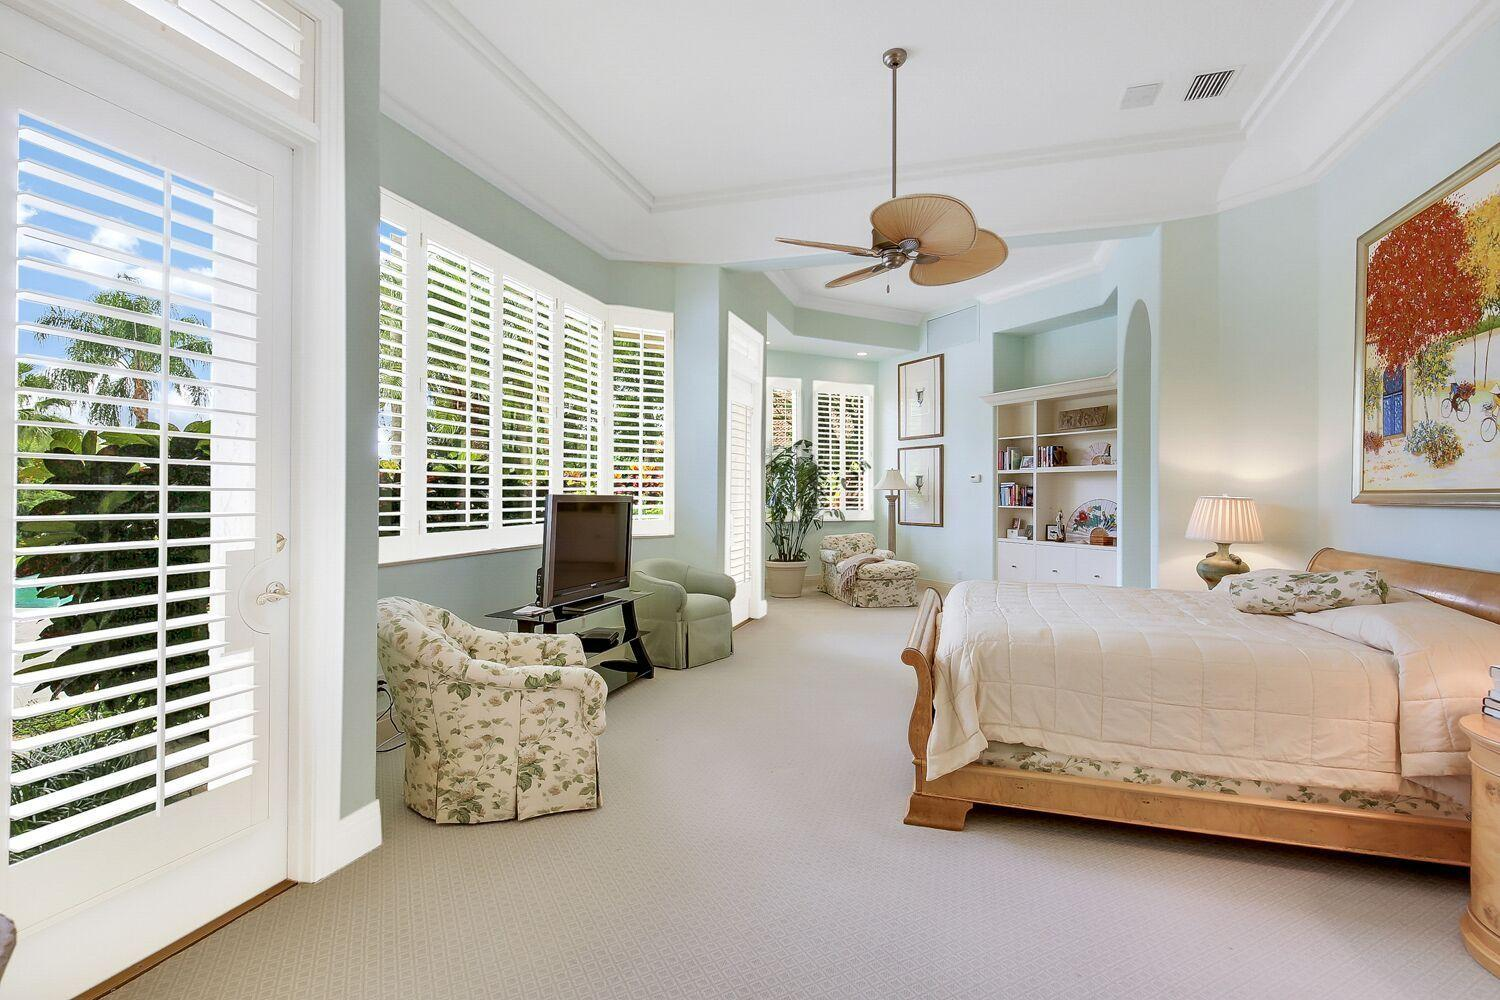 FRENCHMANS CREEK HOMES FOR SALE